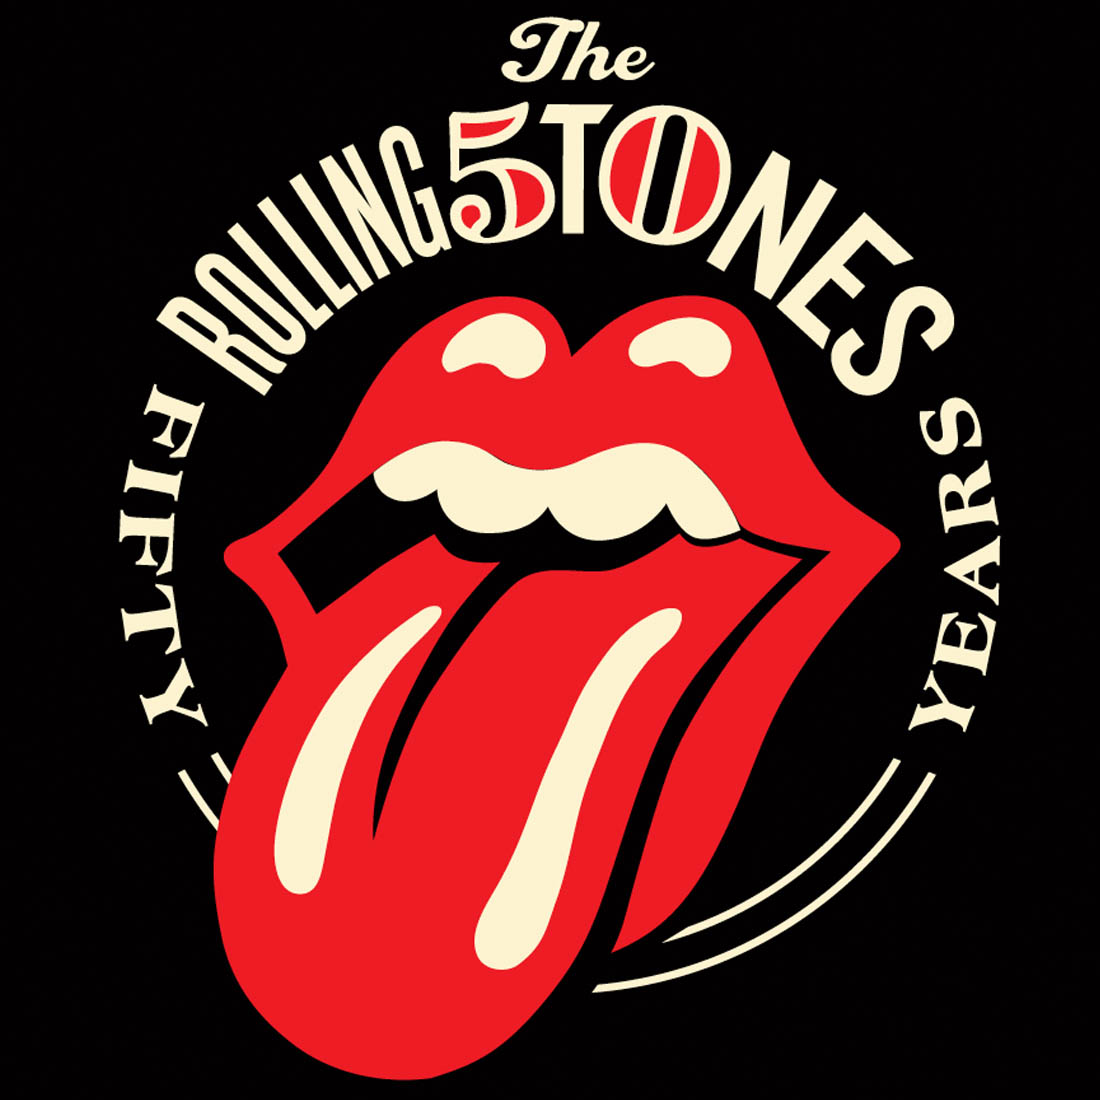 rolling stones logo rs 50 visual